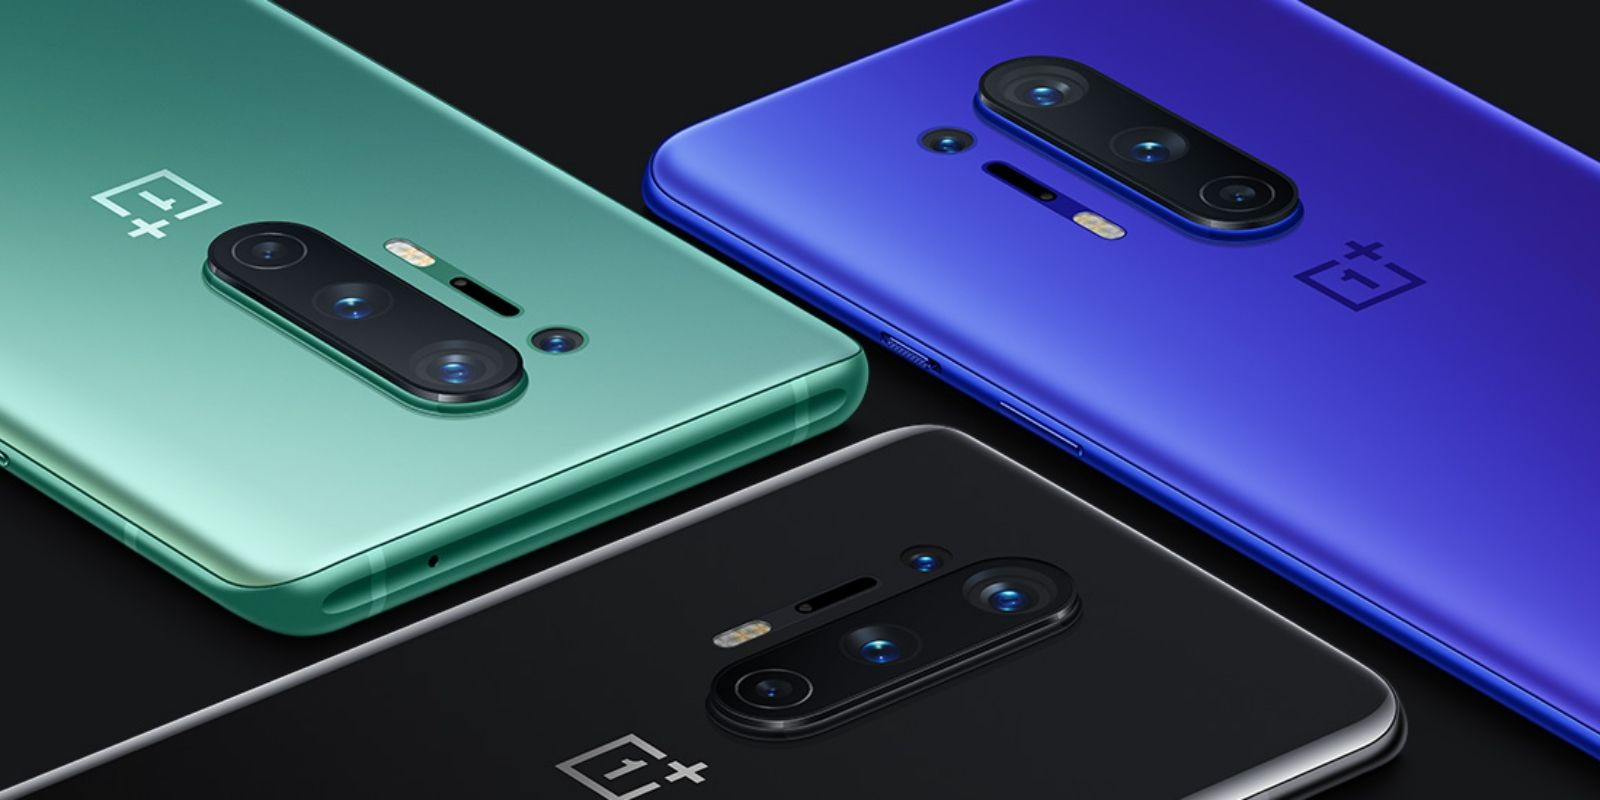 OnePlus 8 Pro different colors